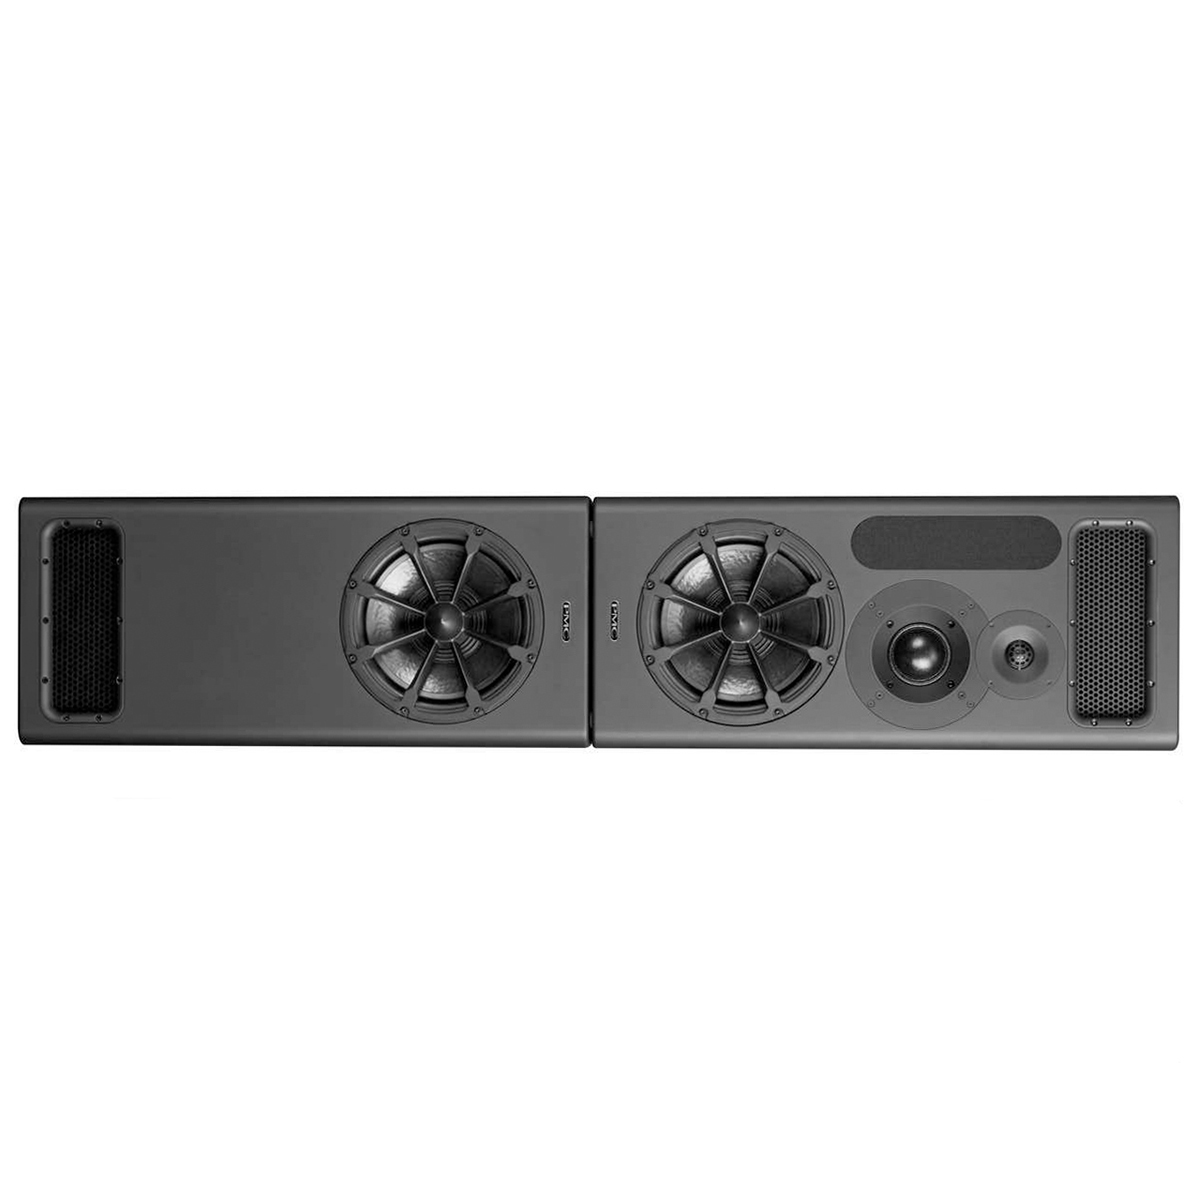 Pmc Mb3 Xbd C A Centre Speaker Life Style Store